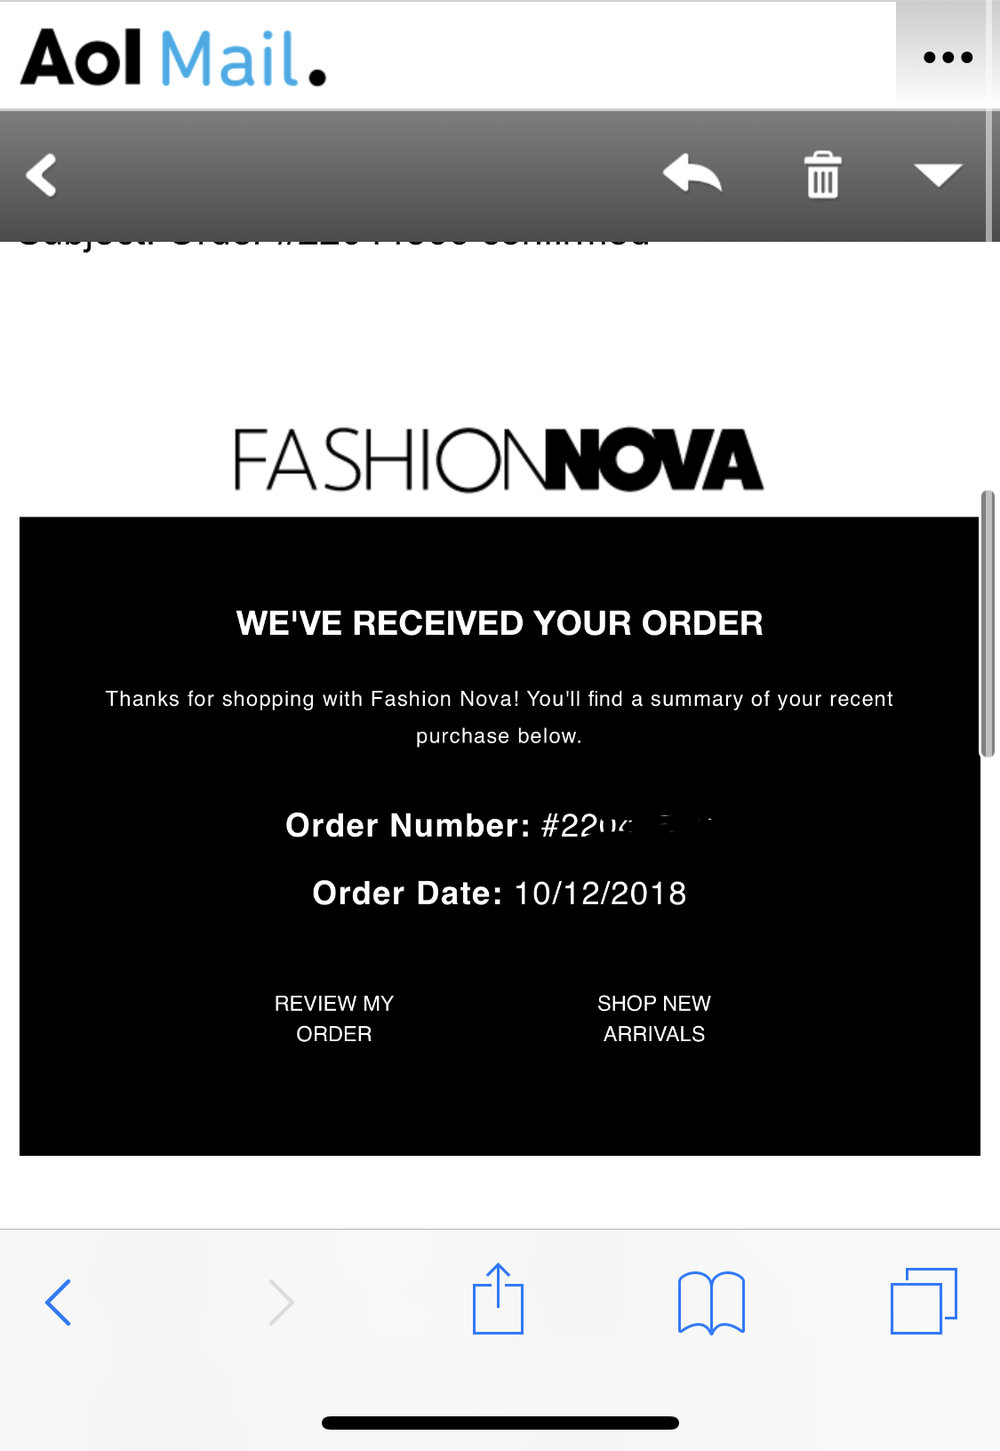 At this Moment: I'd rather BUY DESIGNER, THAN a Fashion Nova Fit!